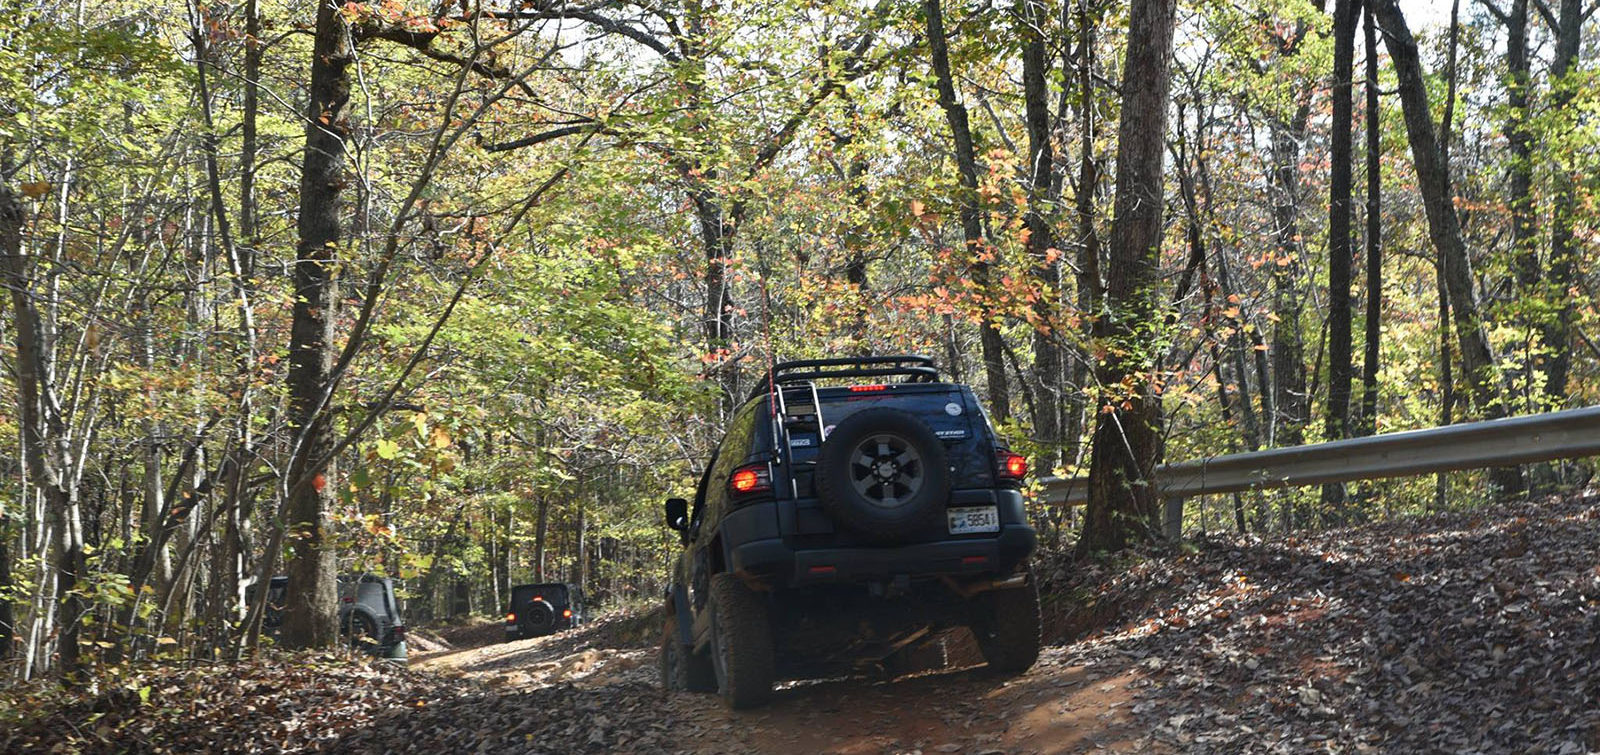 FJ cruiser at Uwharrie -central NC 4x4